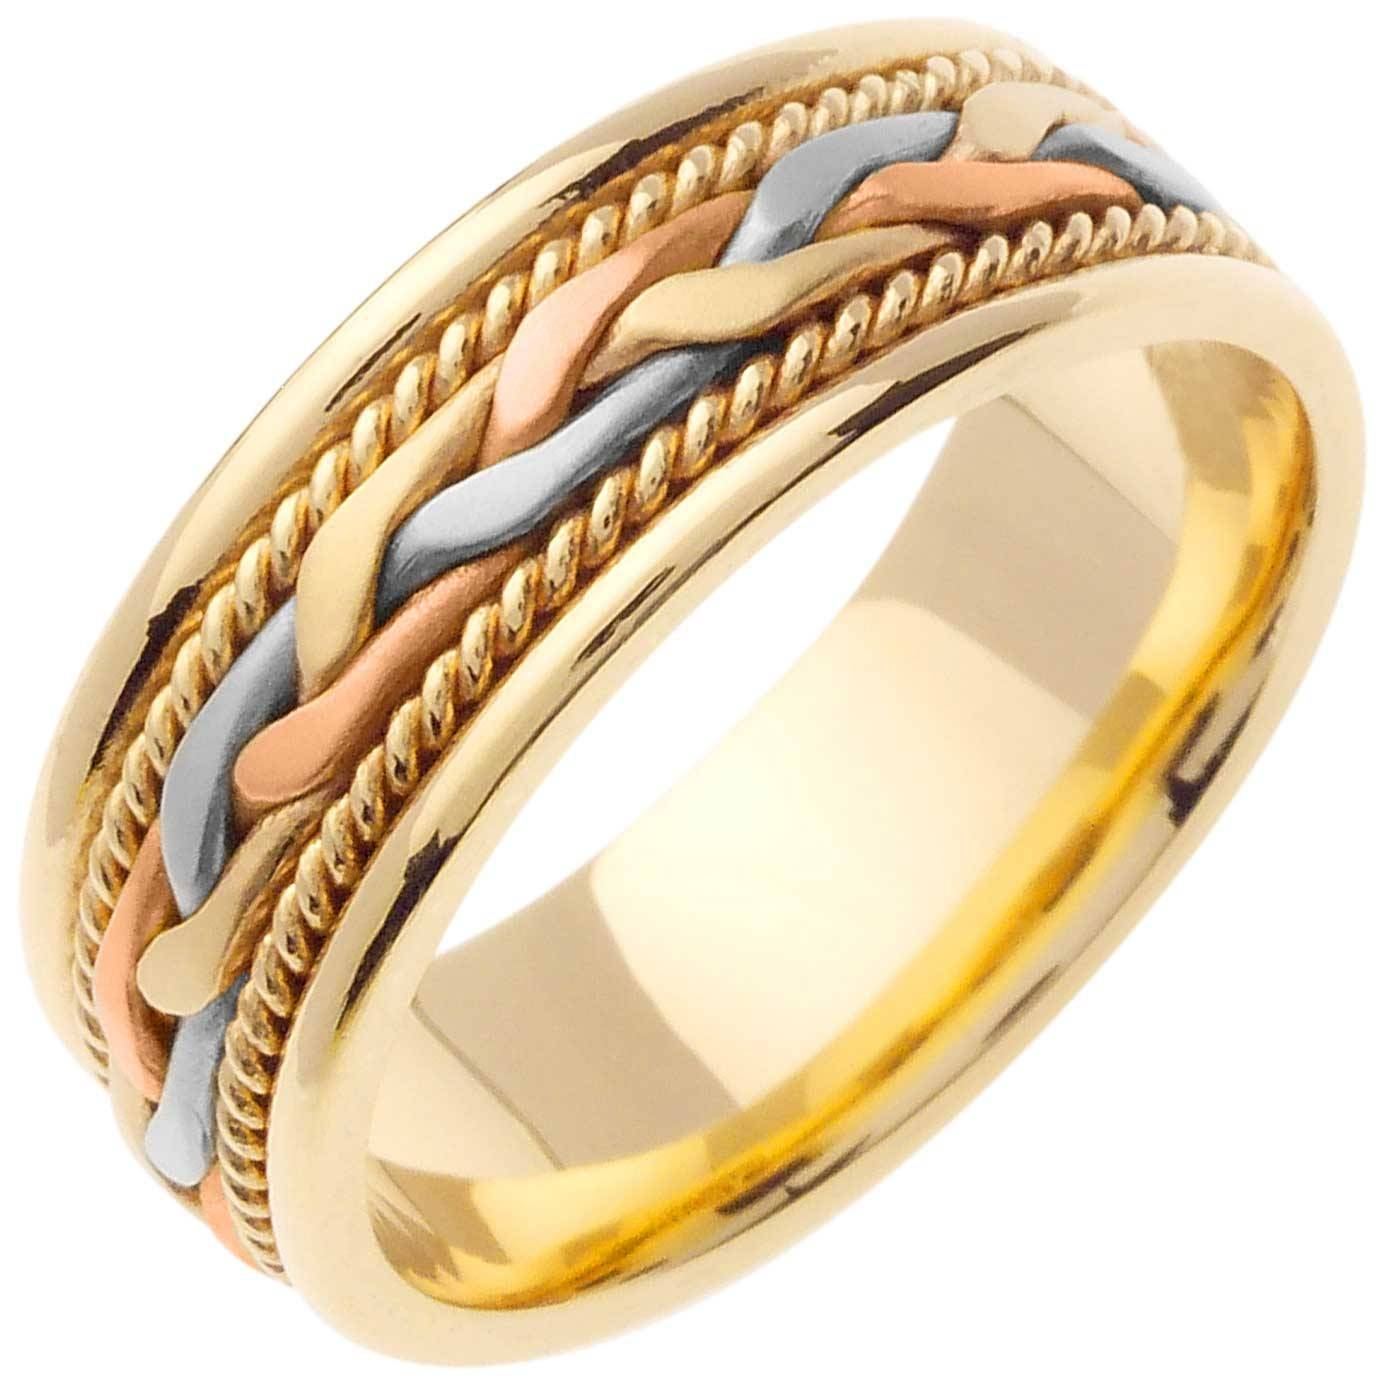 14K Tri Color Gold French Braid Band 7Mm  3000182 – Shop At Intended For Three Color Braided Wedding Bands (View 9 of 15)